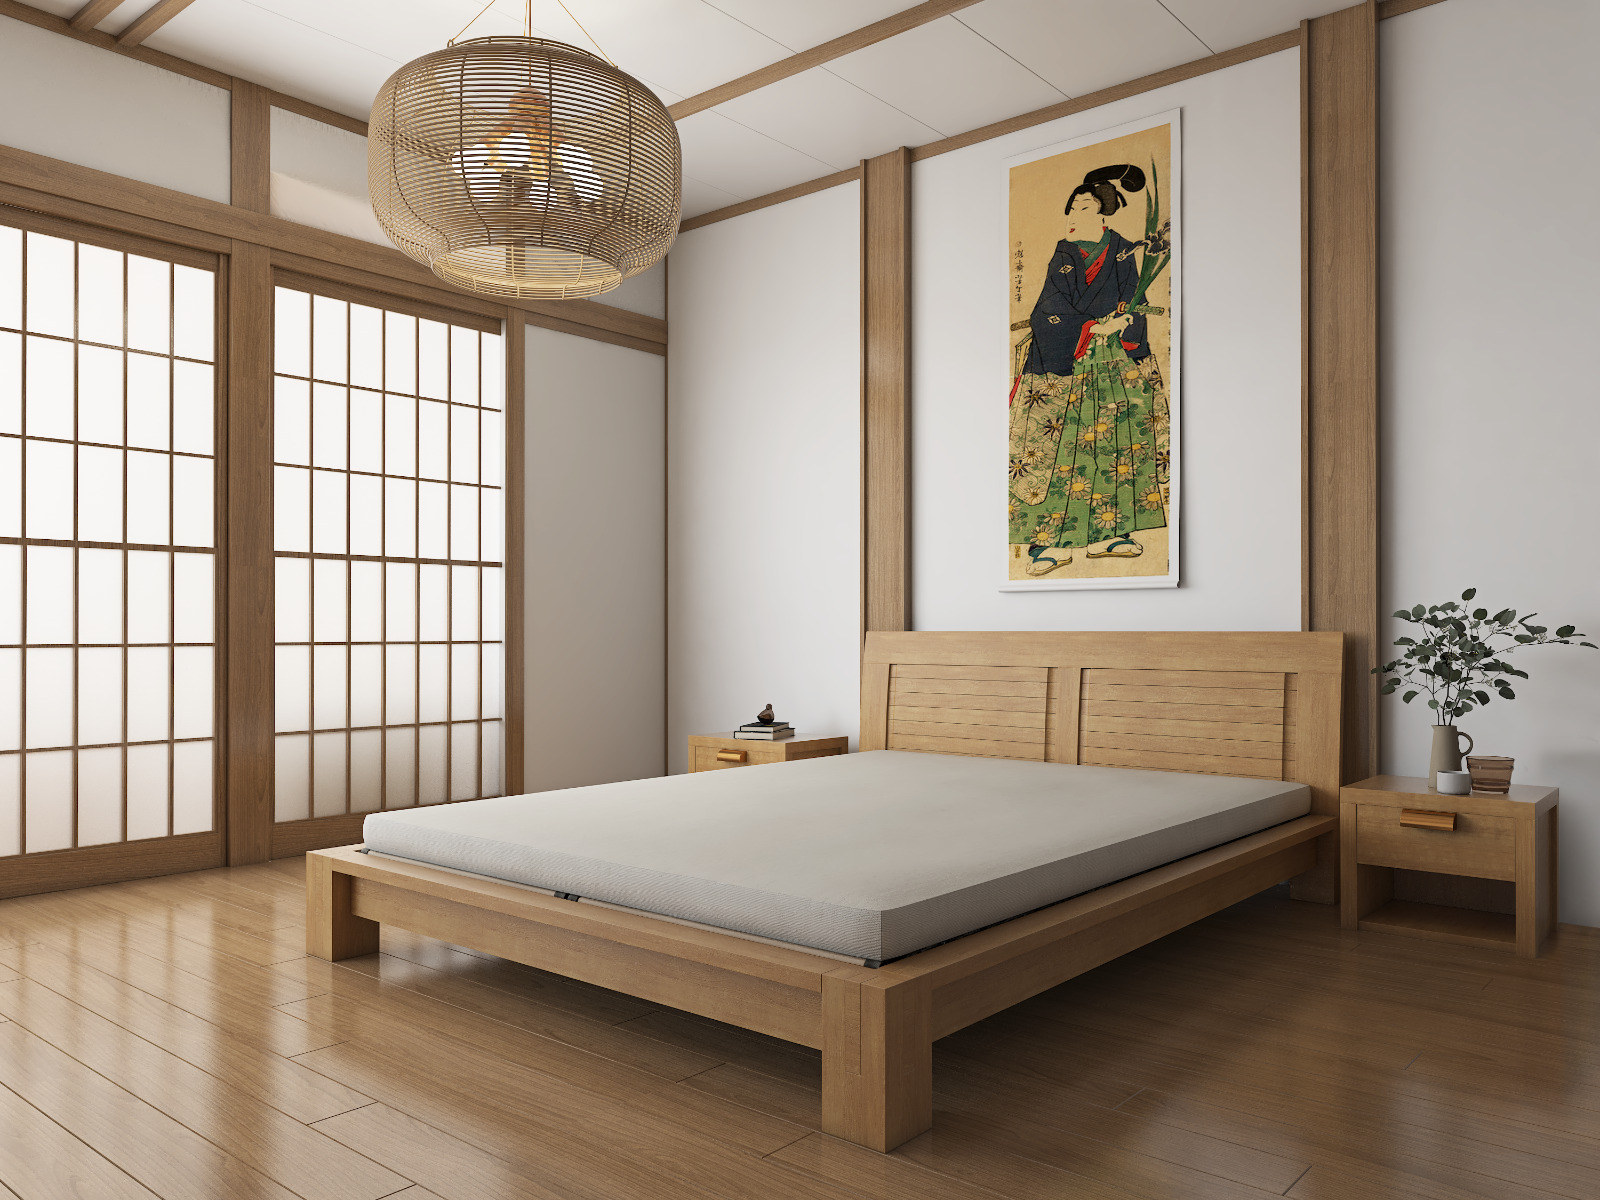 A Geisha painting is mounted above the bed